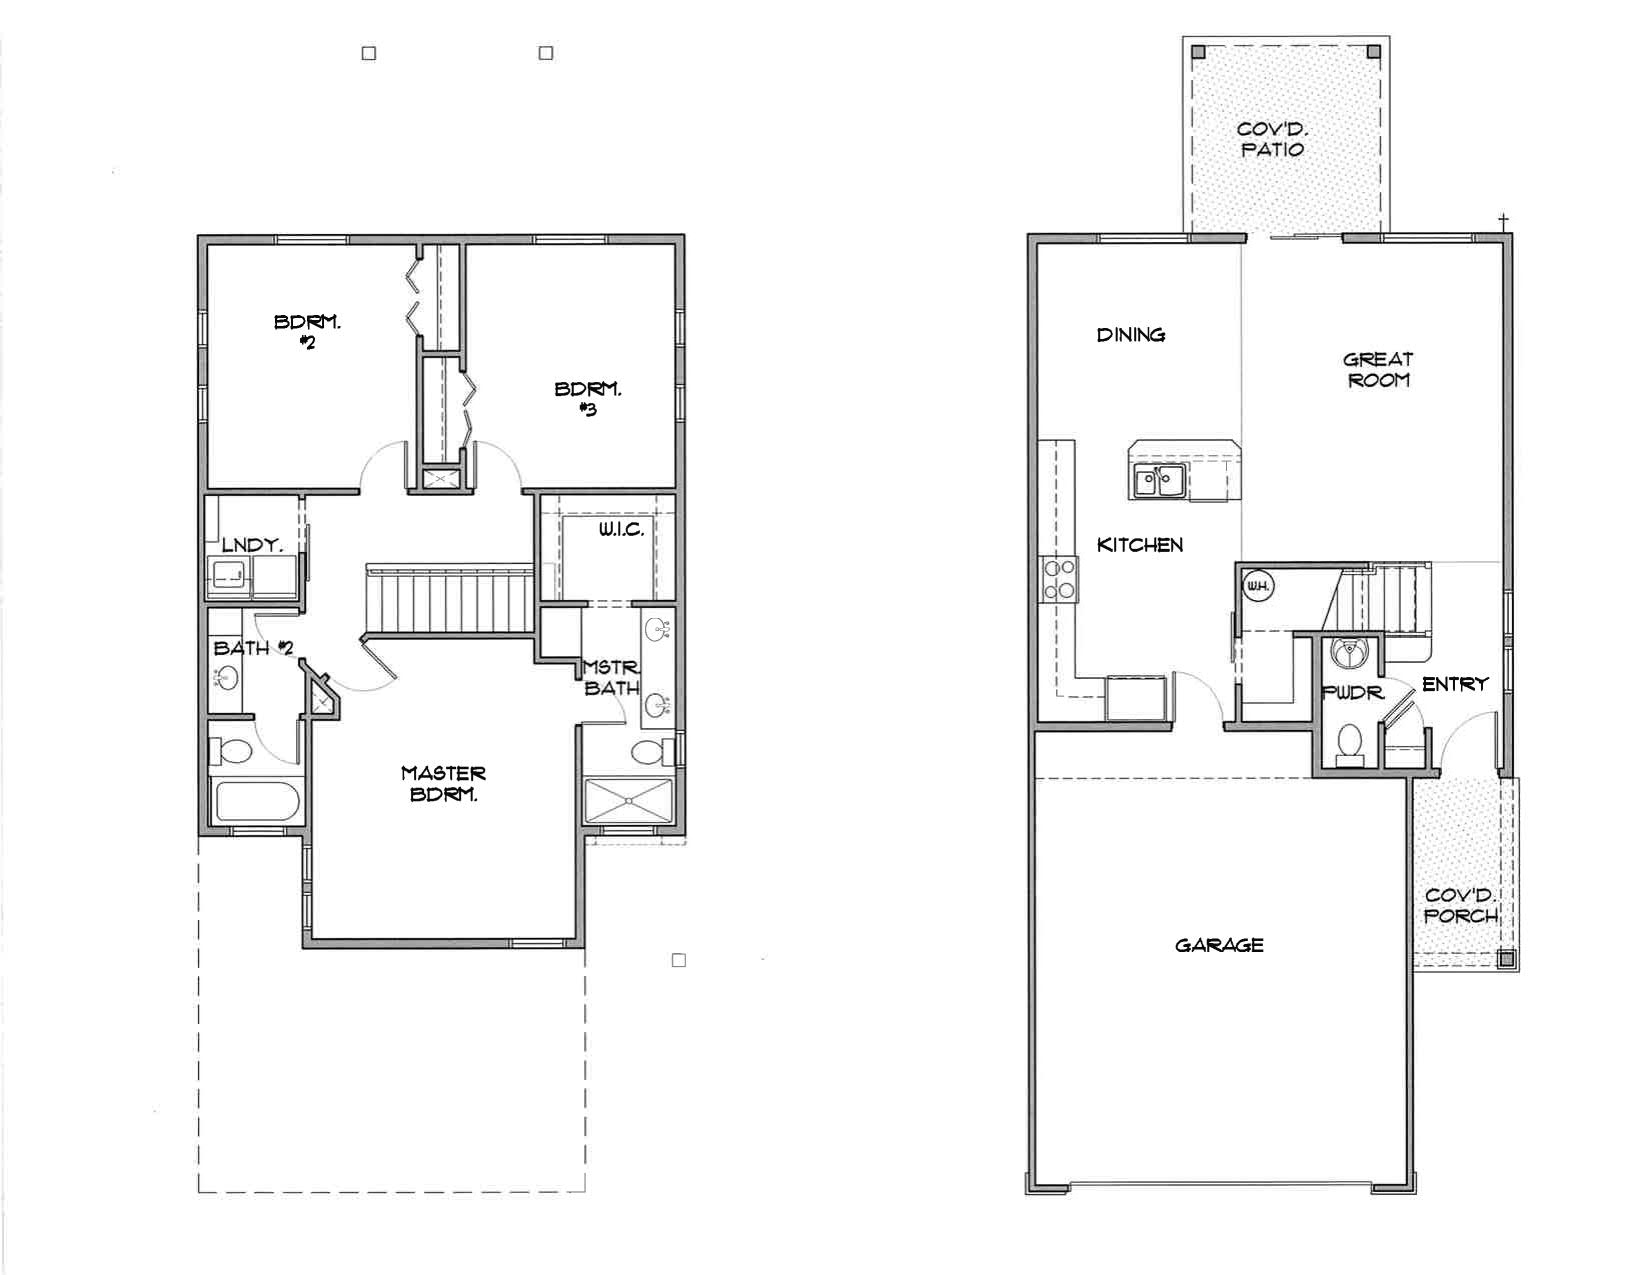 Floorplan elevations southcreek patio homes Patio home plans